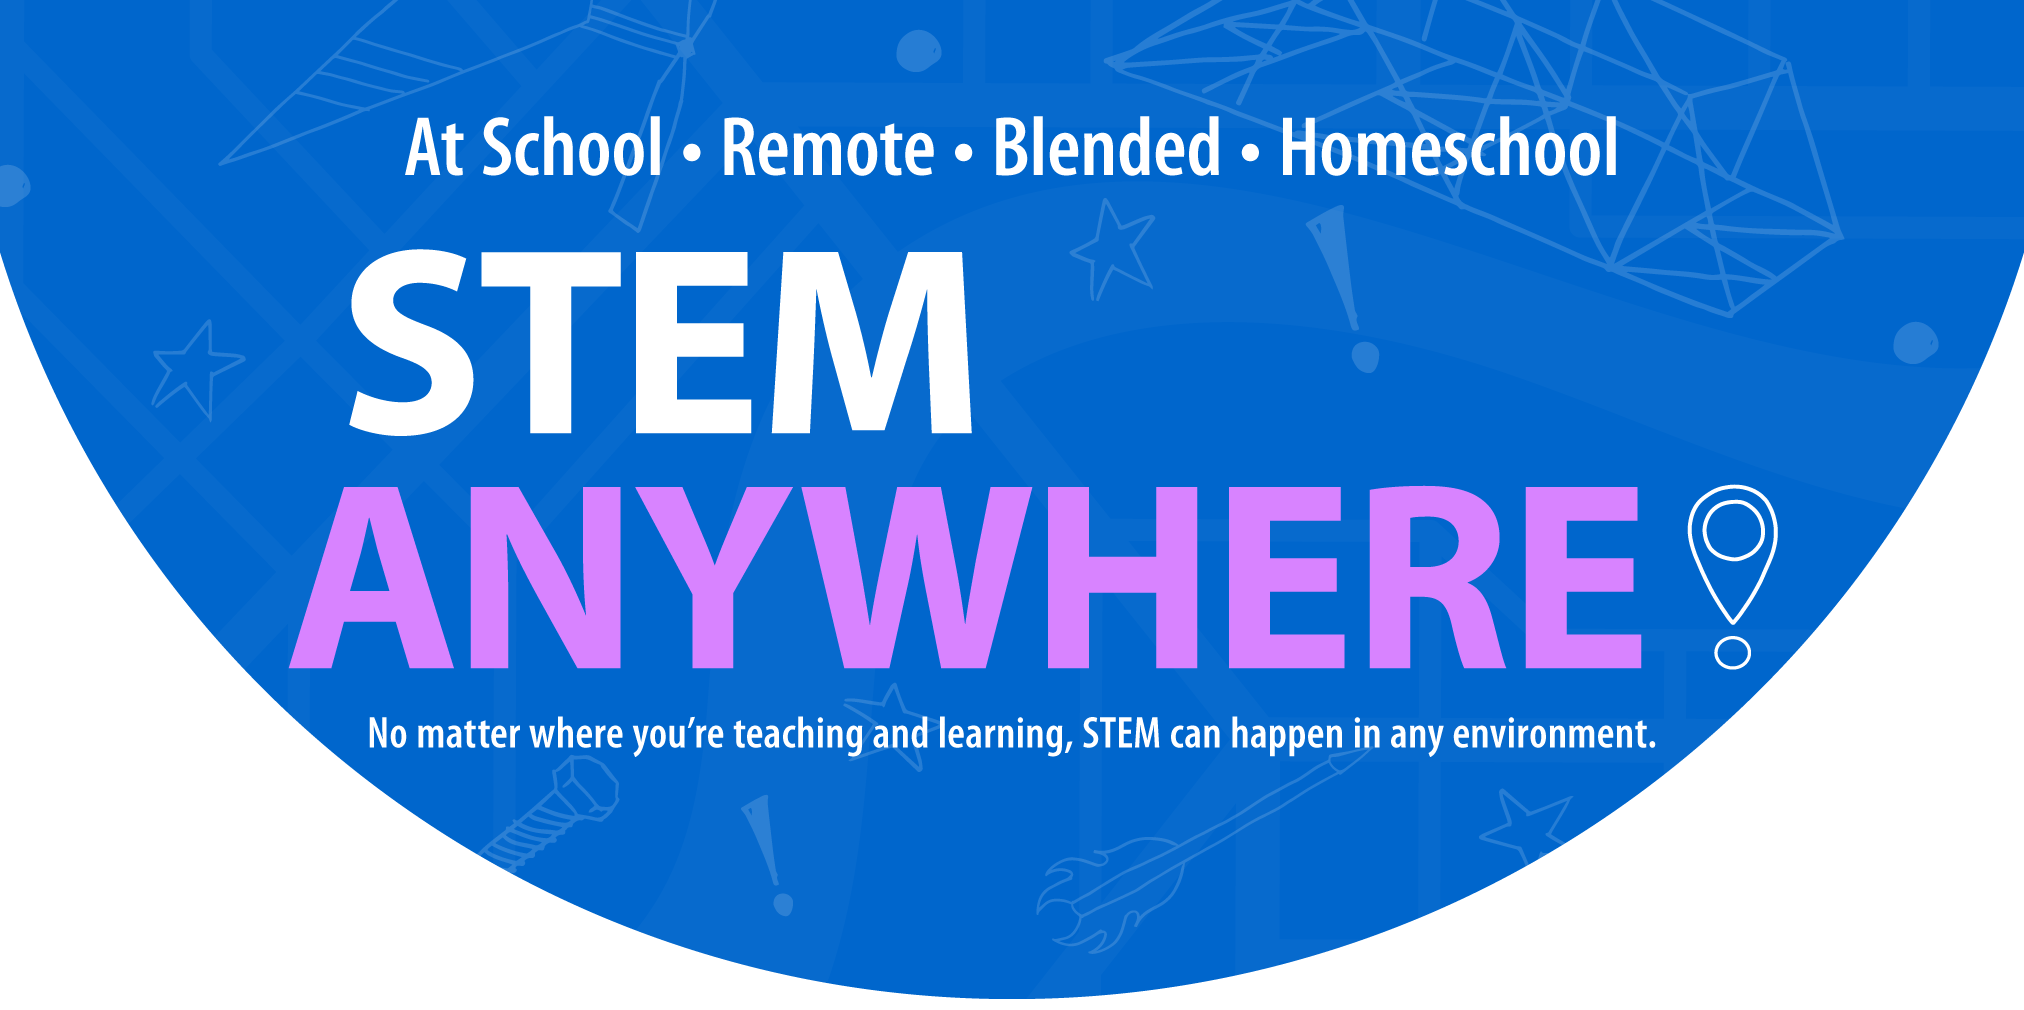 At School • Remote • Blended • Homeschool – STEM ANYWHERE! – No matter where you're teaching and learning, STEM can happen in any environment.